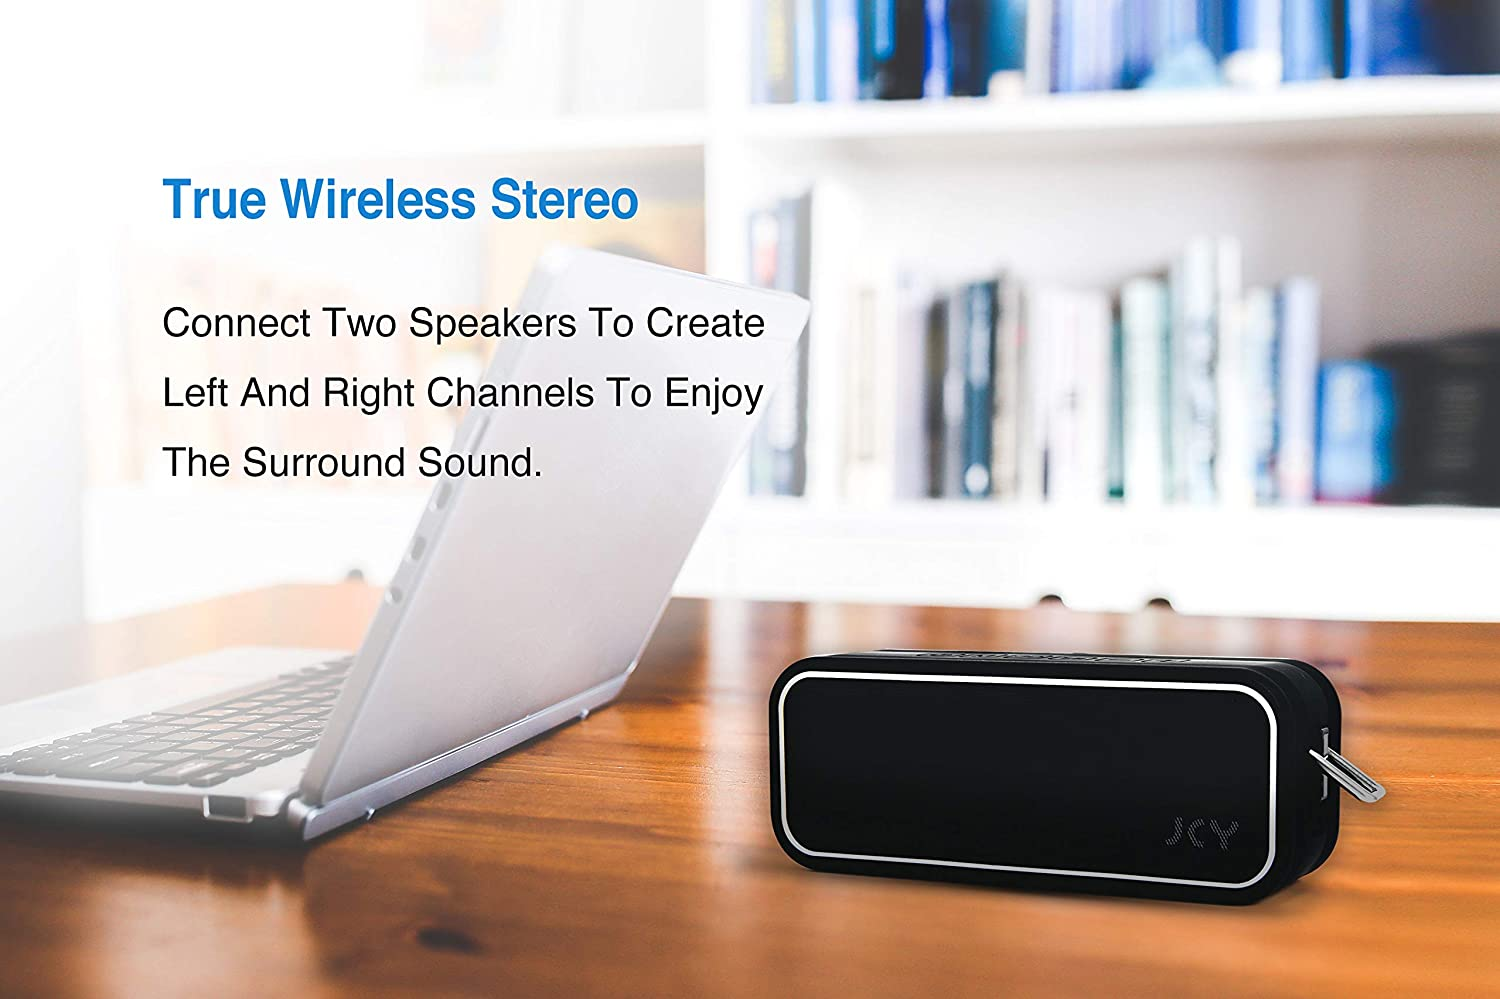 JCY Waterproof Bluetooth Speaker Outdoor Wireless Speaker with Rich Bass 3D Digital Sound with DSP Technology Built-in Mic /  Portable Bluetooth Speaker with IPX7 Waterproof